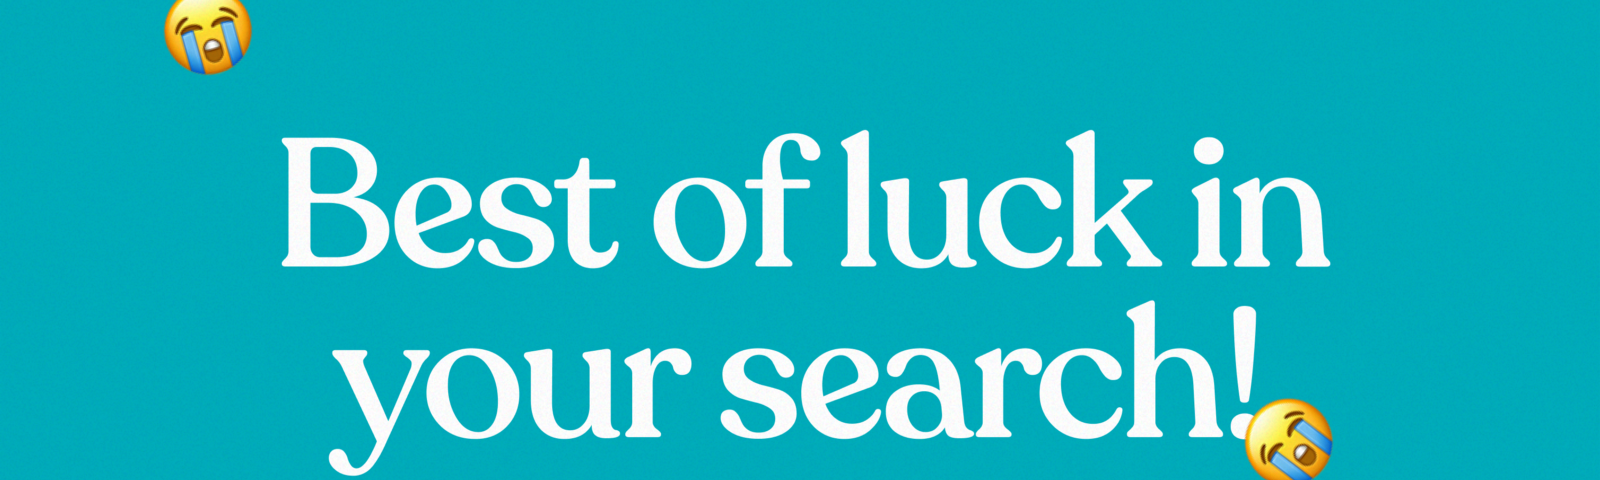 "Illustration that says, ""Best of luck in your search"""